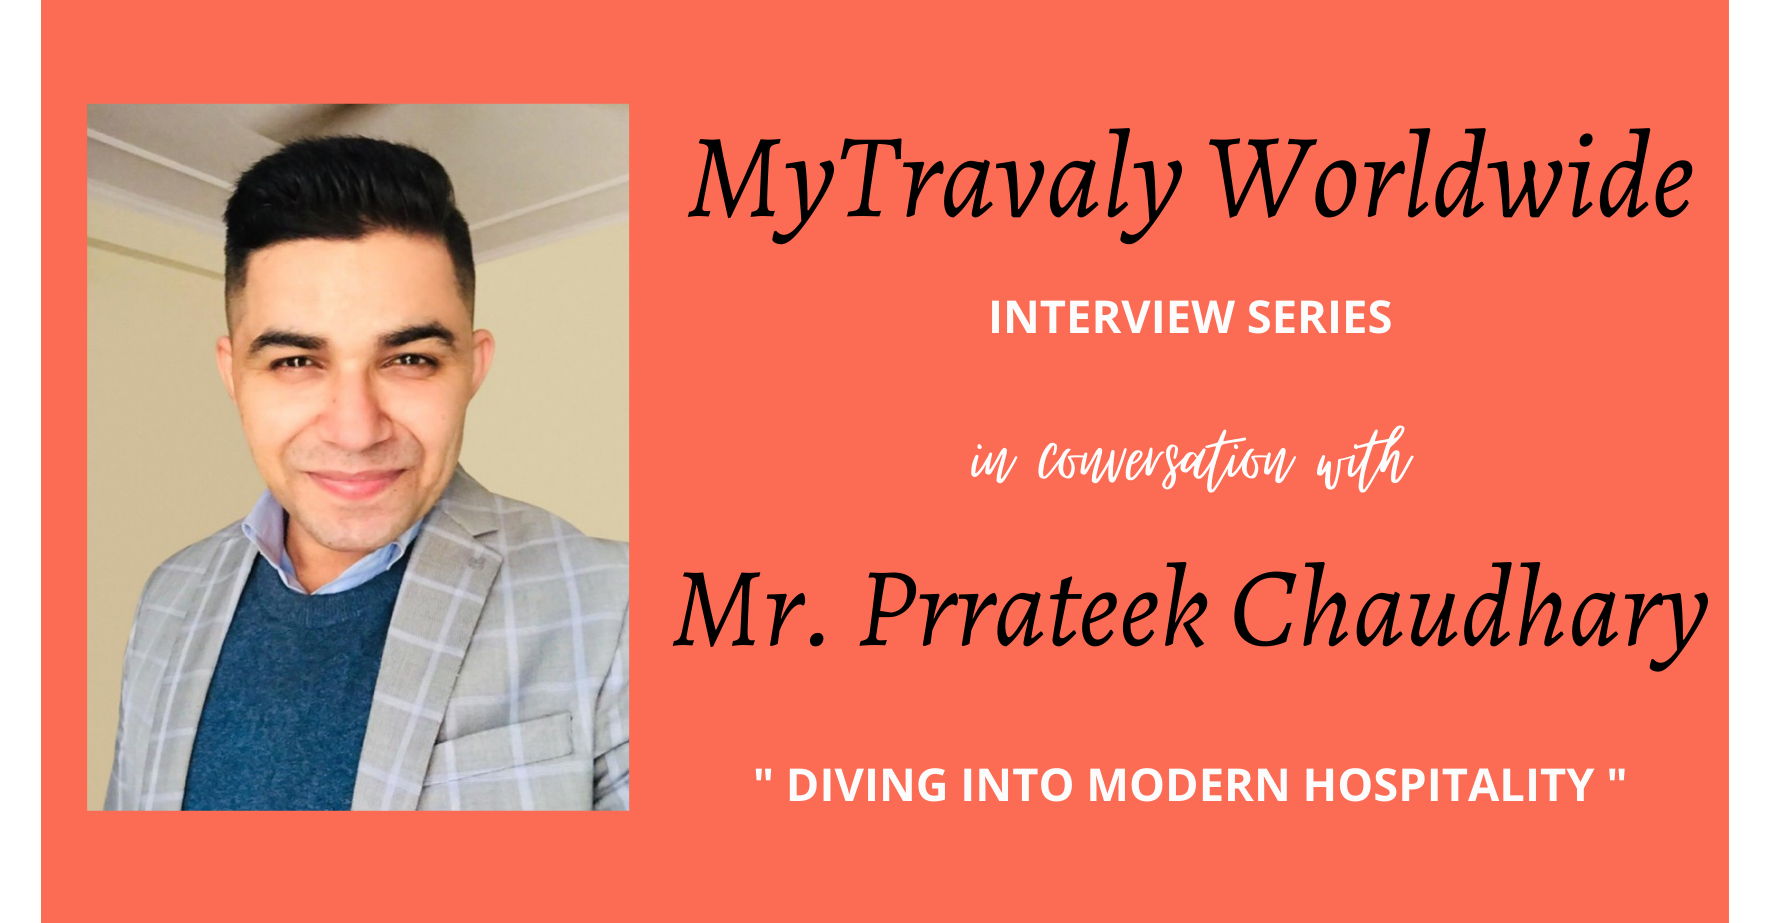 MyTravaly Interview with Prrateek Chaudhary